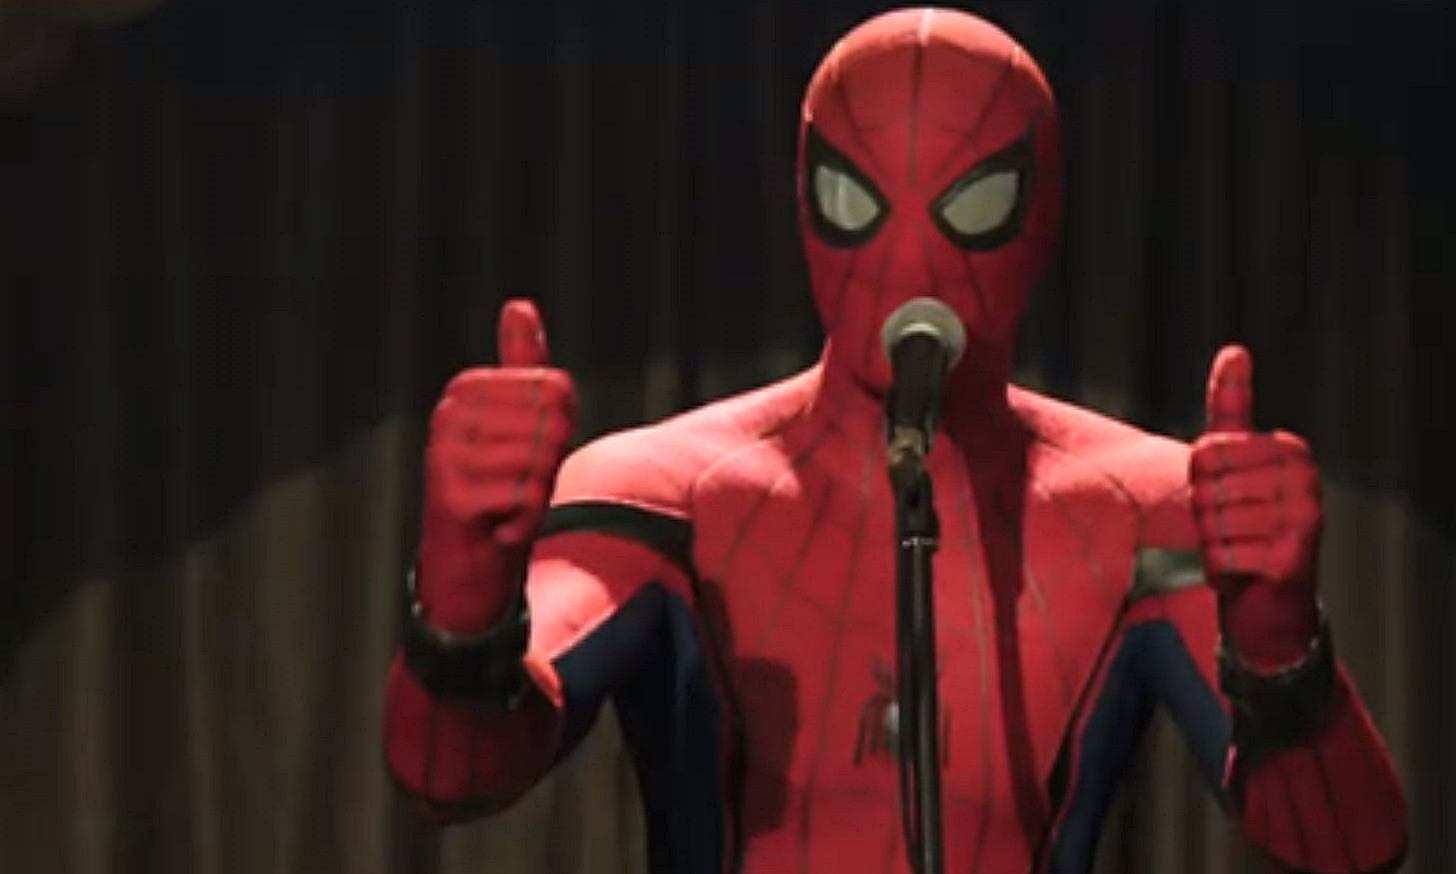 spider-man returns to mcu after sony and disney strike new deal